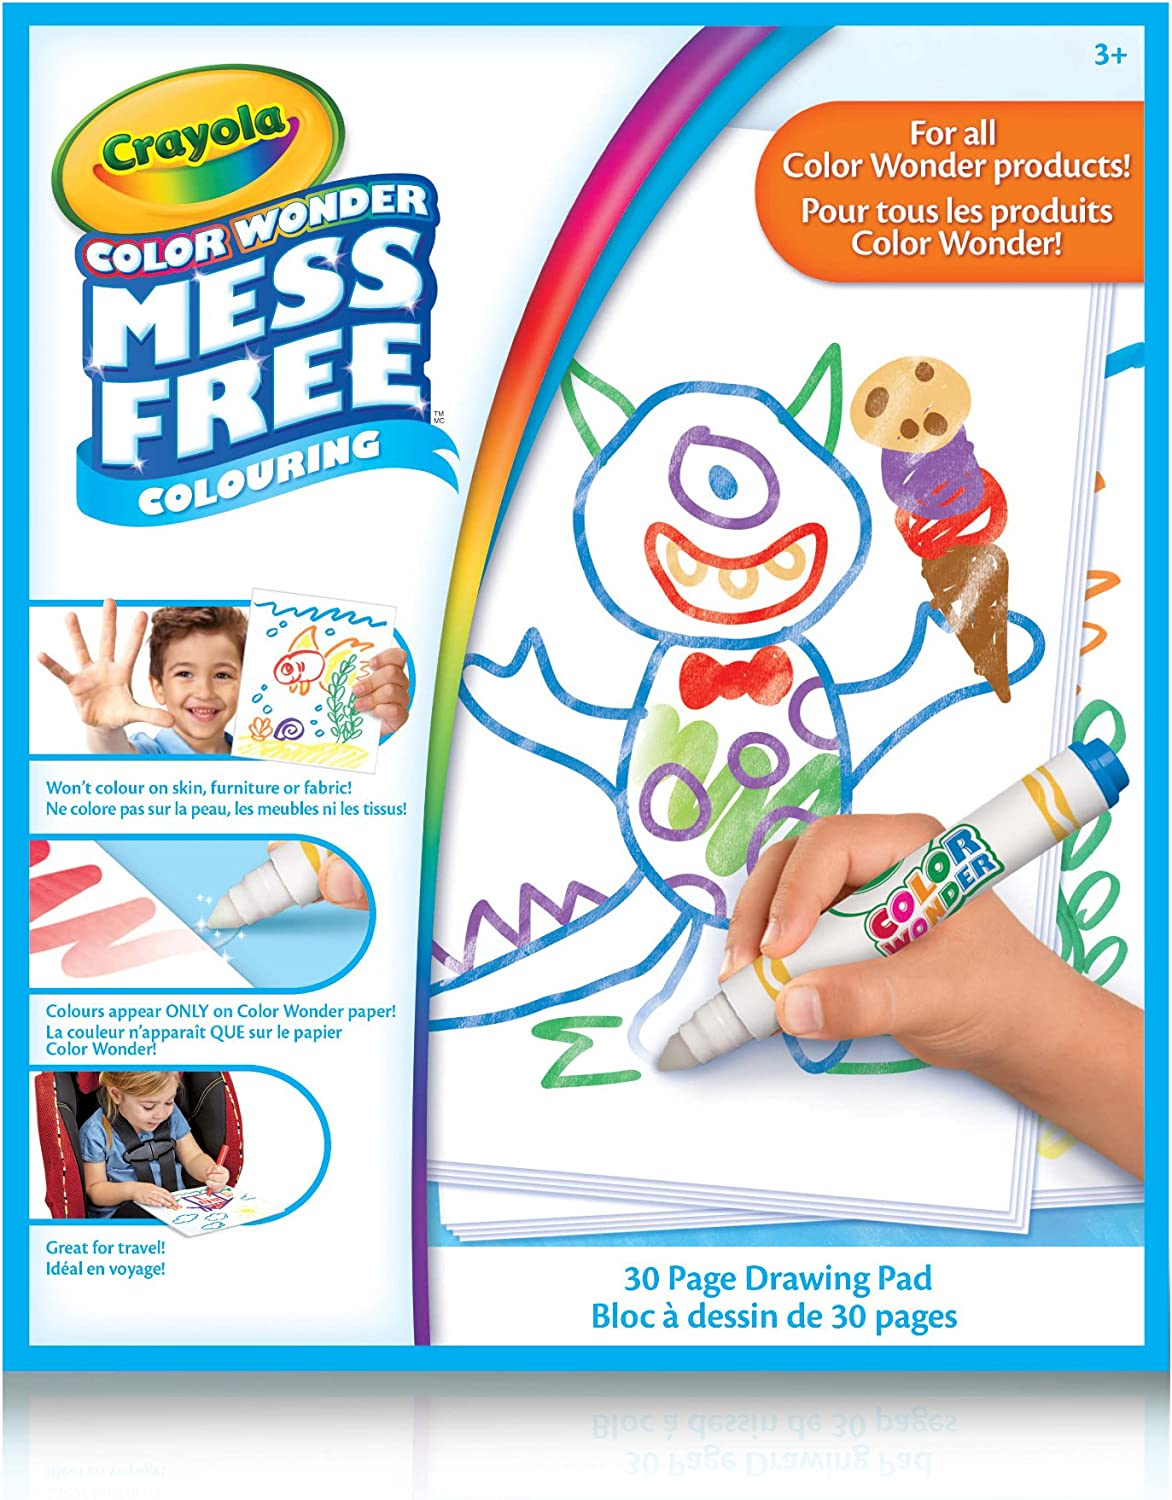 Crayola 75 2443 Color Wonder Drawing Pad Mess Free Colouring Washable No Mess Gift For Boys And Girls Kids Ages 3 4 5 6 And Up Summer Travel Cottage Camping On The Go Arts And Crafts